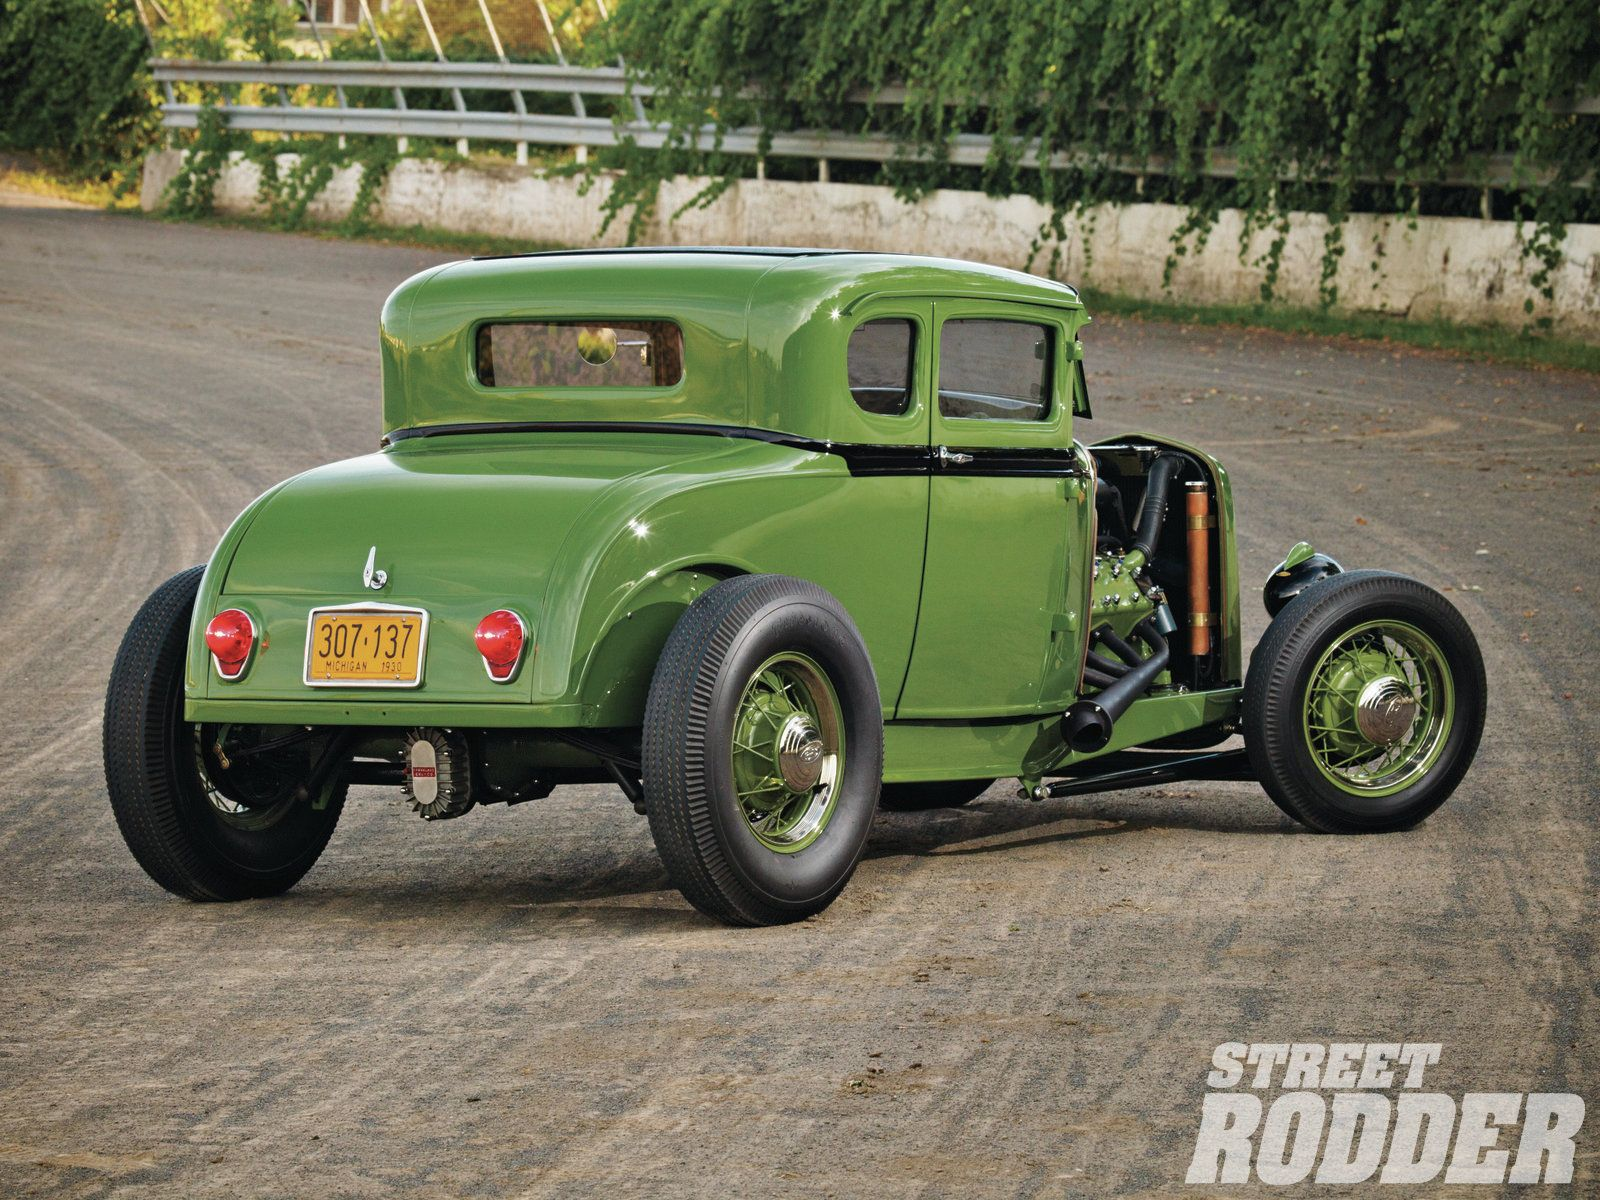 1930 Ford Coupe Model-A model hot rod rods retro wallpaper ...